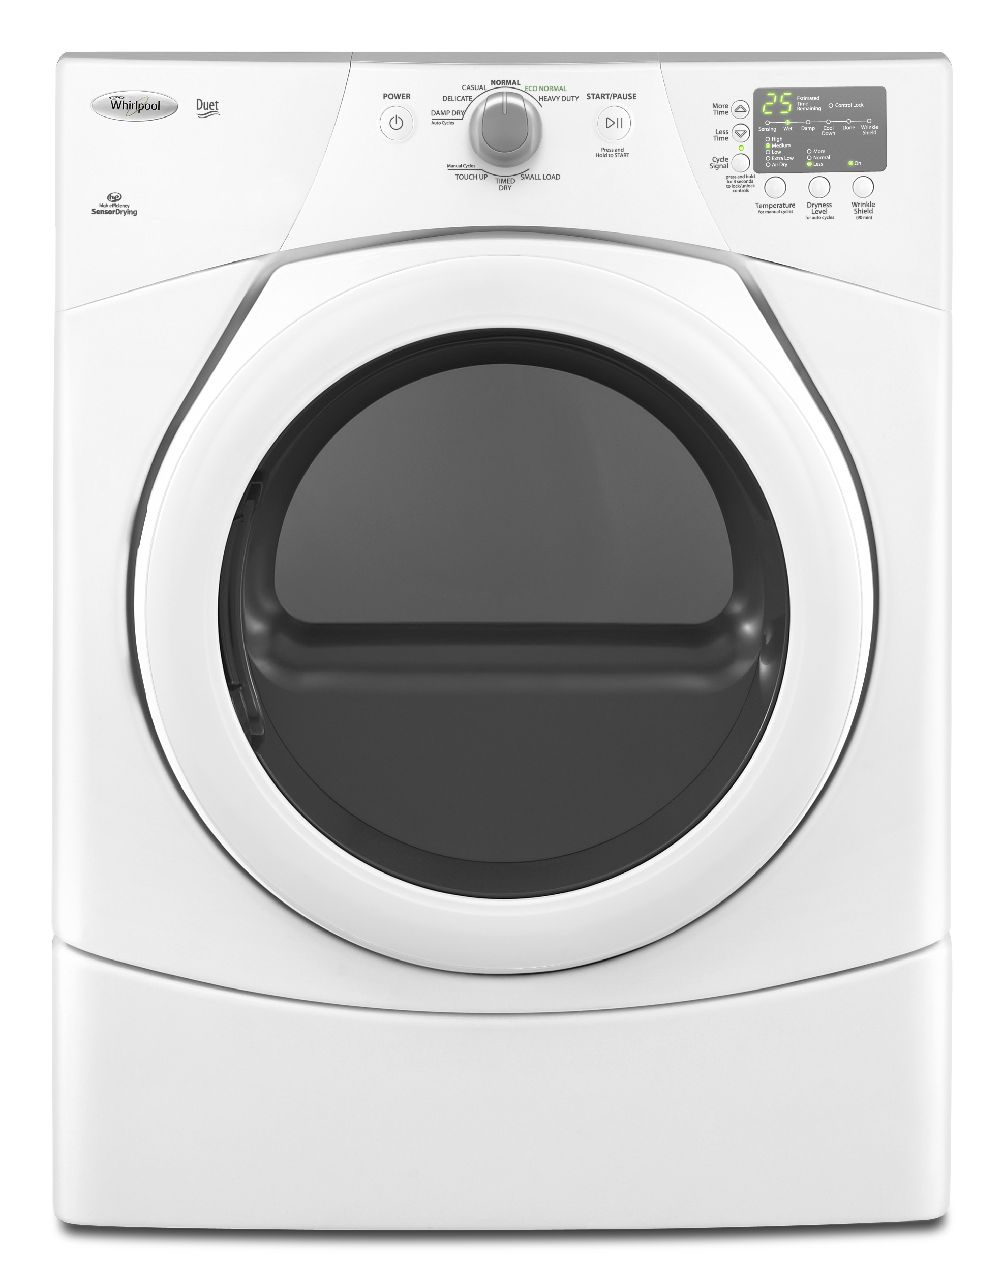 manual for a whirlpool gas dryer model lgr5634awo